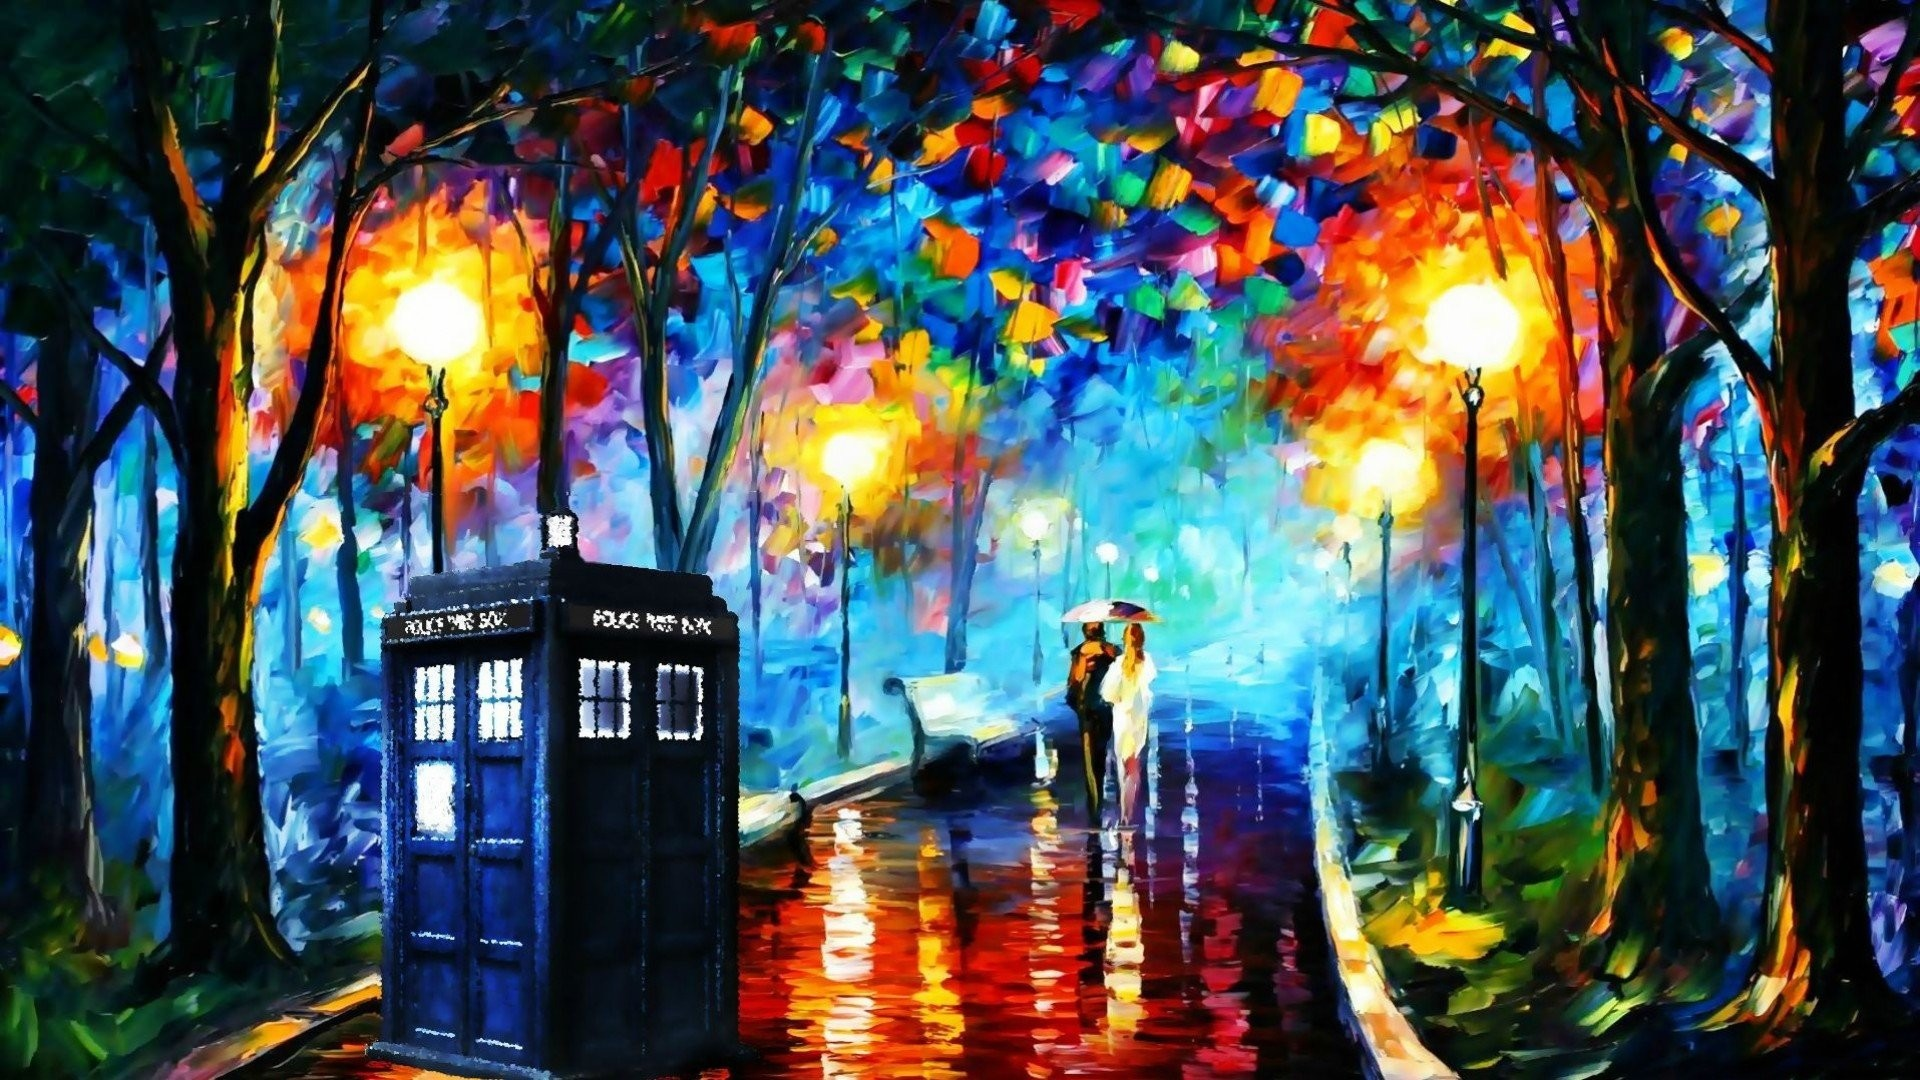 Doctor Who Tardis Wallpapers Iphone with High Definition Wallpaper  Resolution